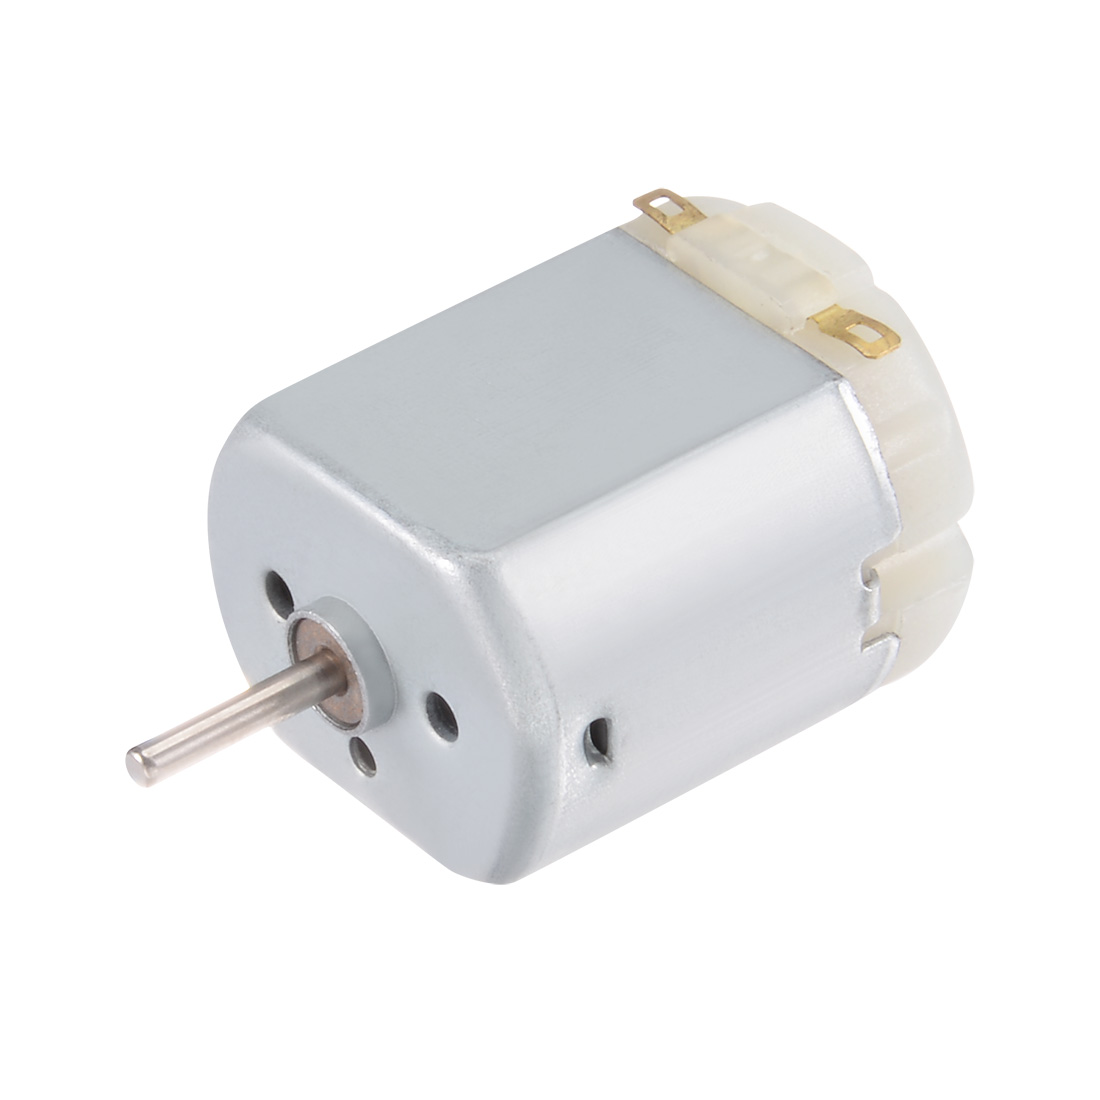 Small Motor DC 6V 5100RPM High Speed Motor for DIY Hobby Toy Cars Remote Control